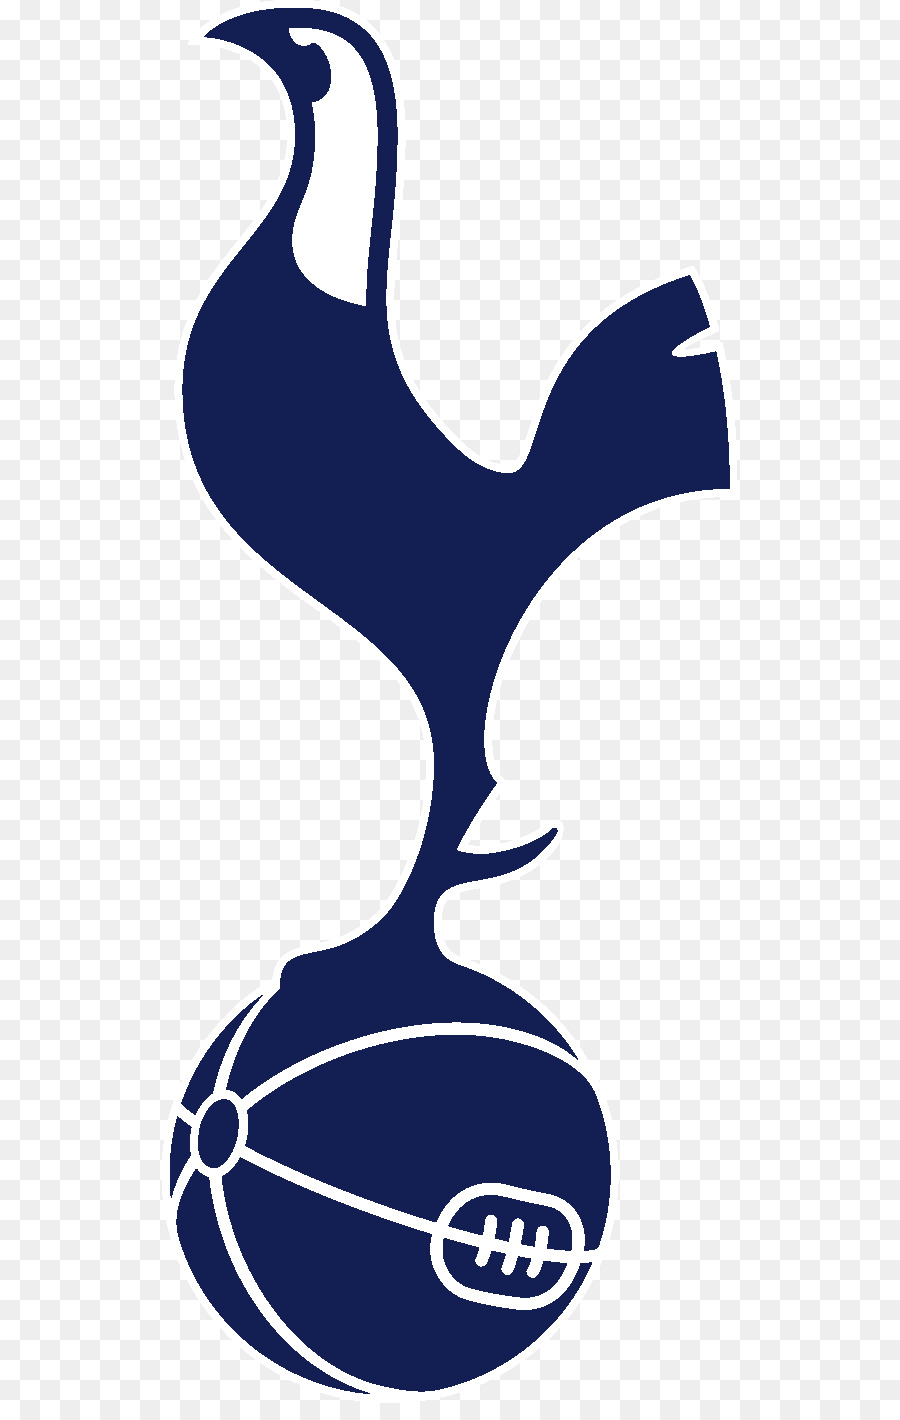 Tottenham Hotspur Bird Png Download 575 1403 Free Transparent Tottenham Hotspur Fc Png Download Cleanpng Kisspng